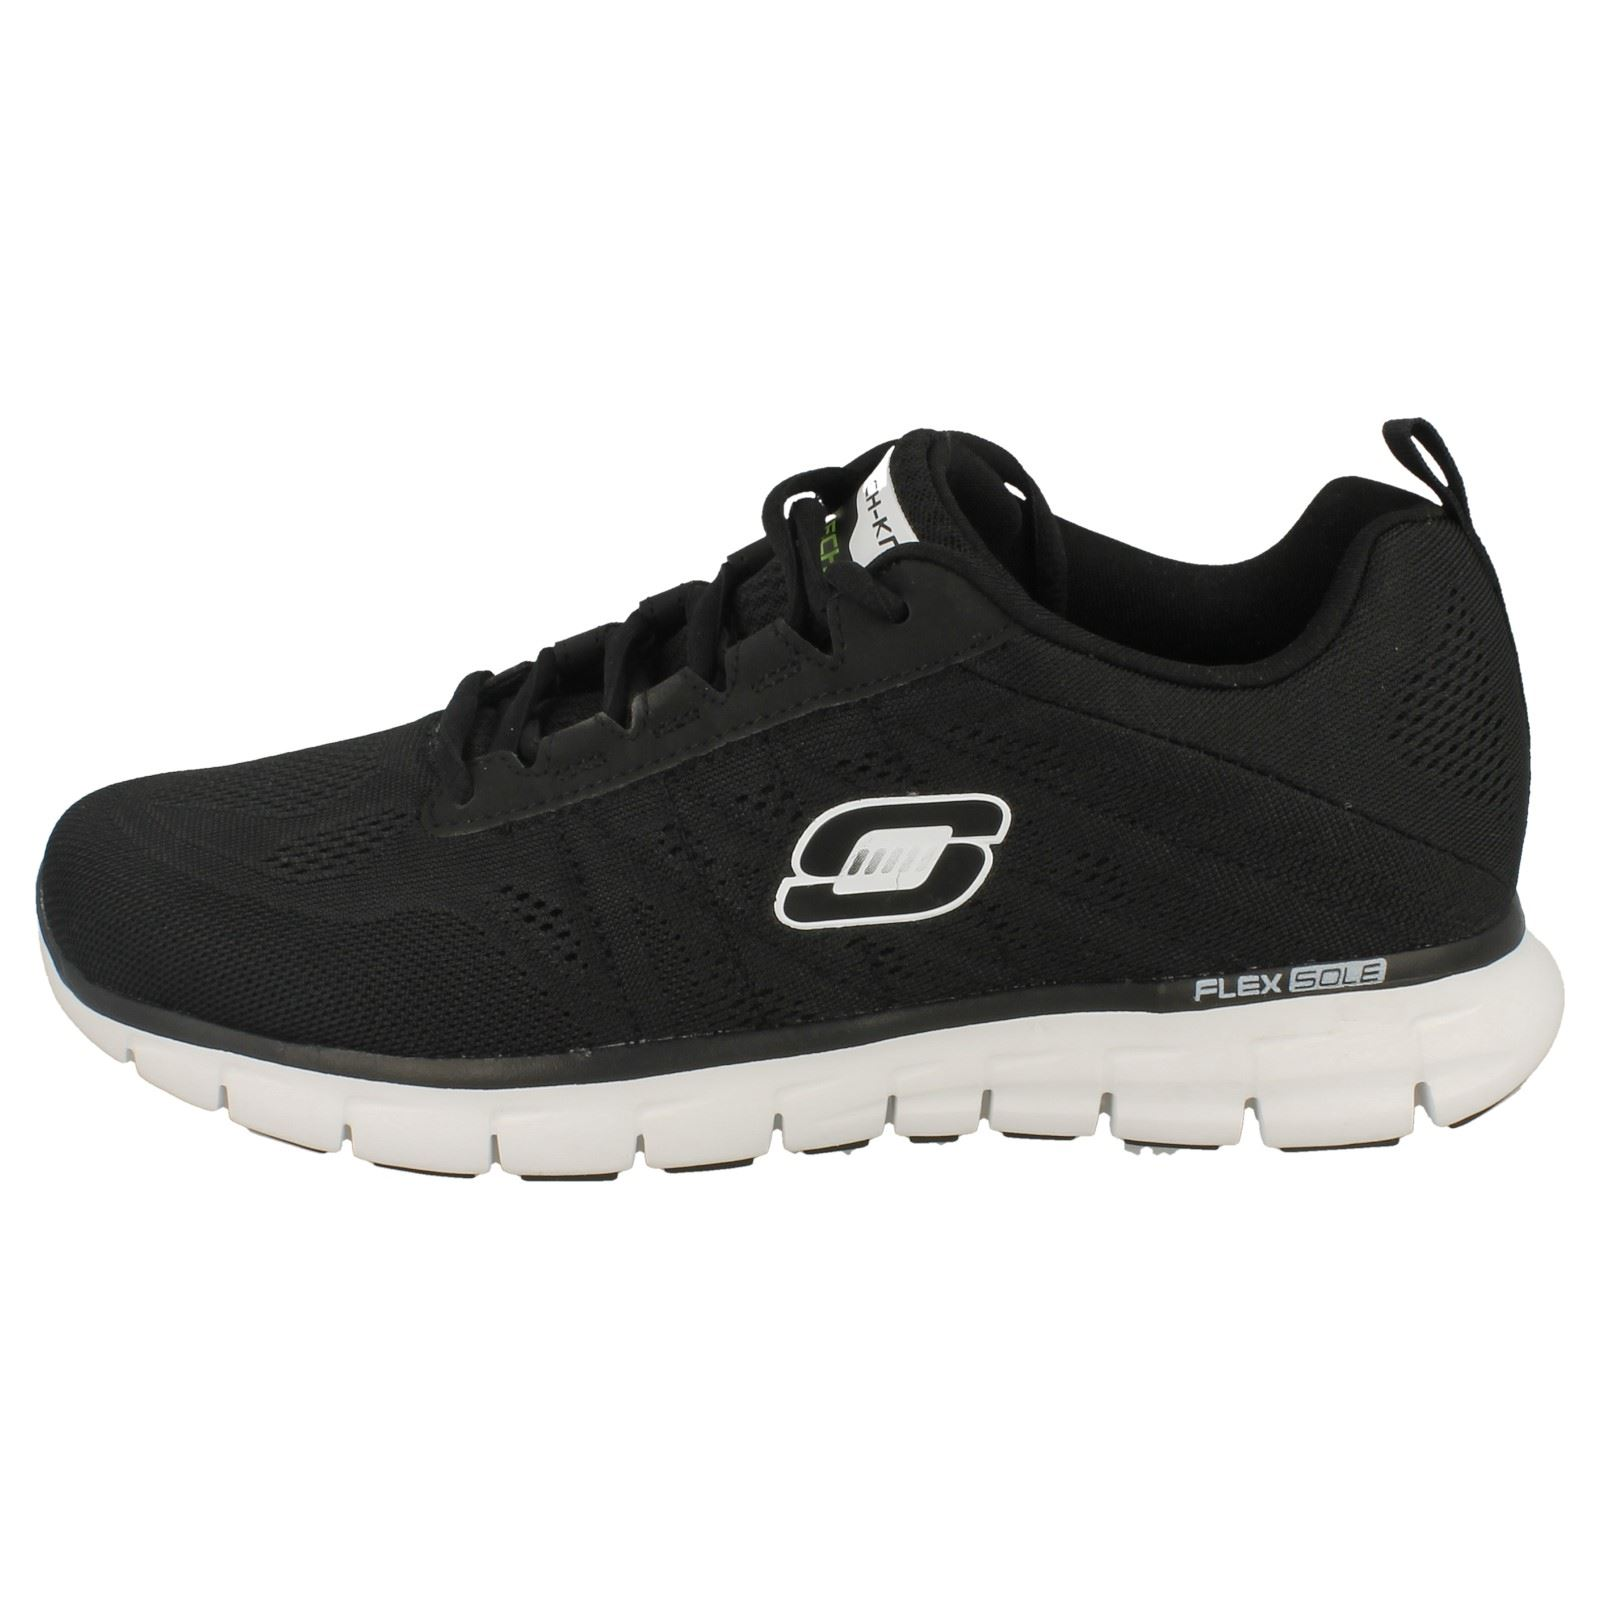 skechers lightweight memory foam